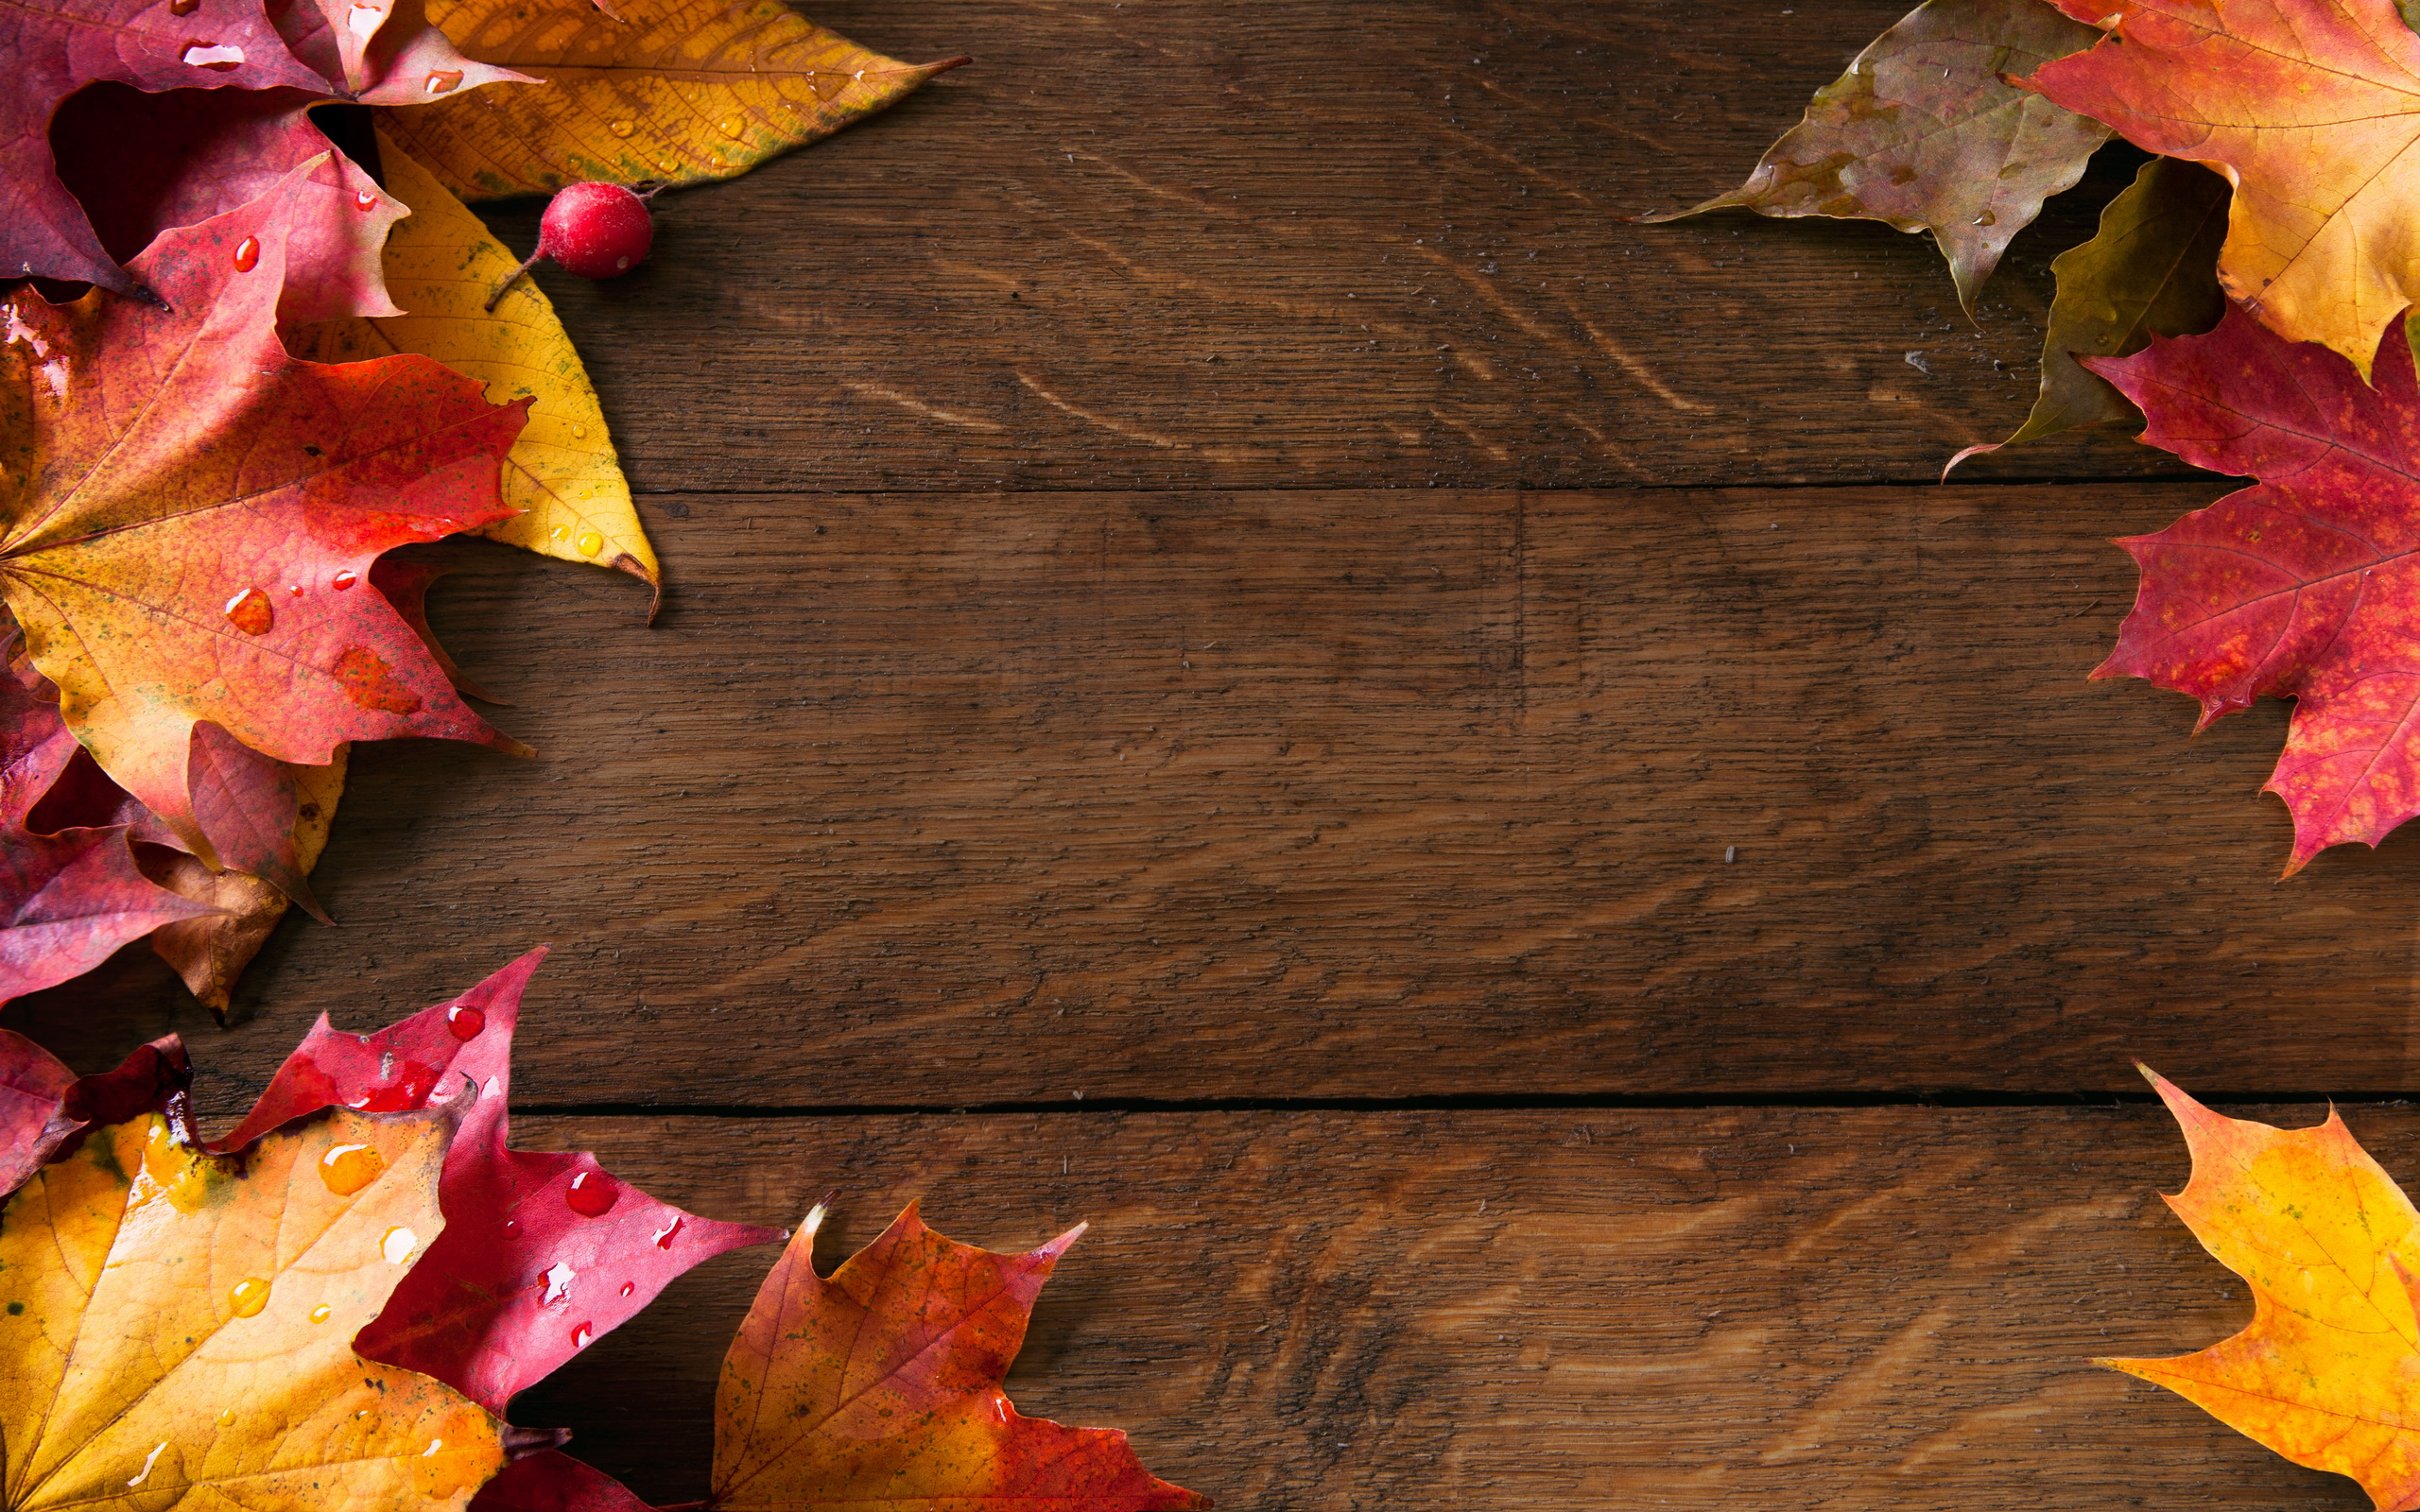 Fall Themed Iphone Wallpapers Fall Hd Wallpaper Background Image 2560x1600 Id